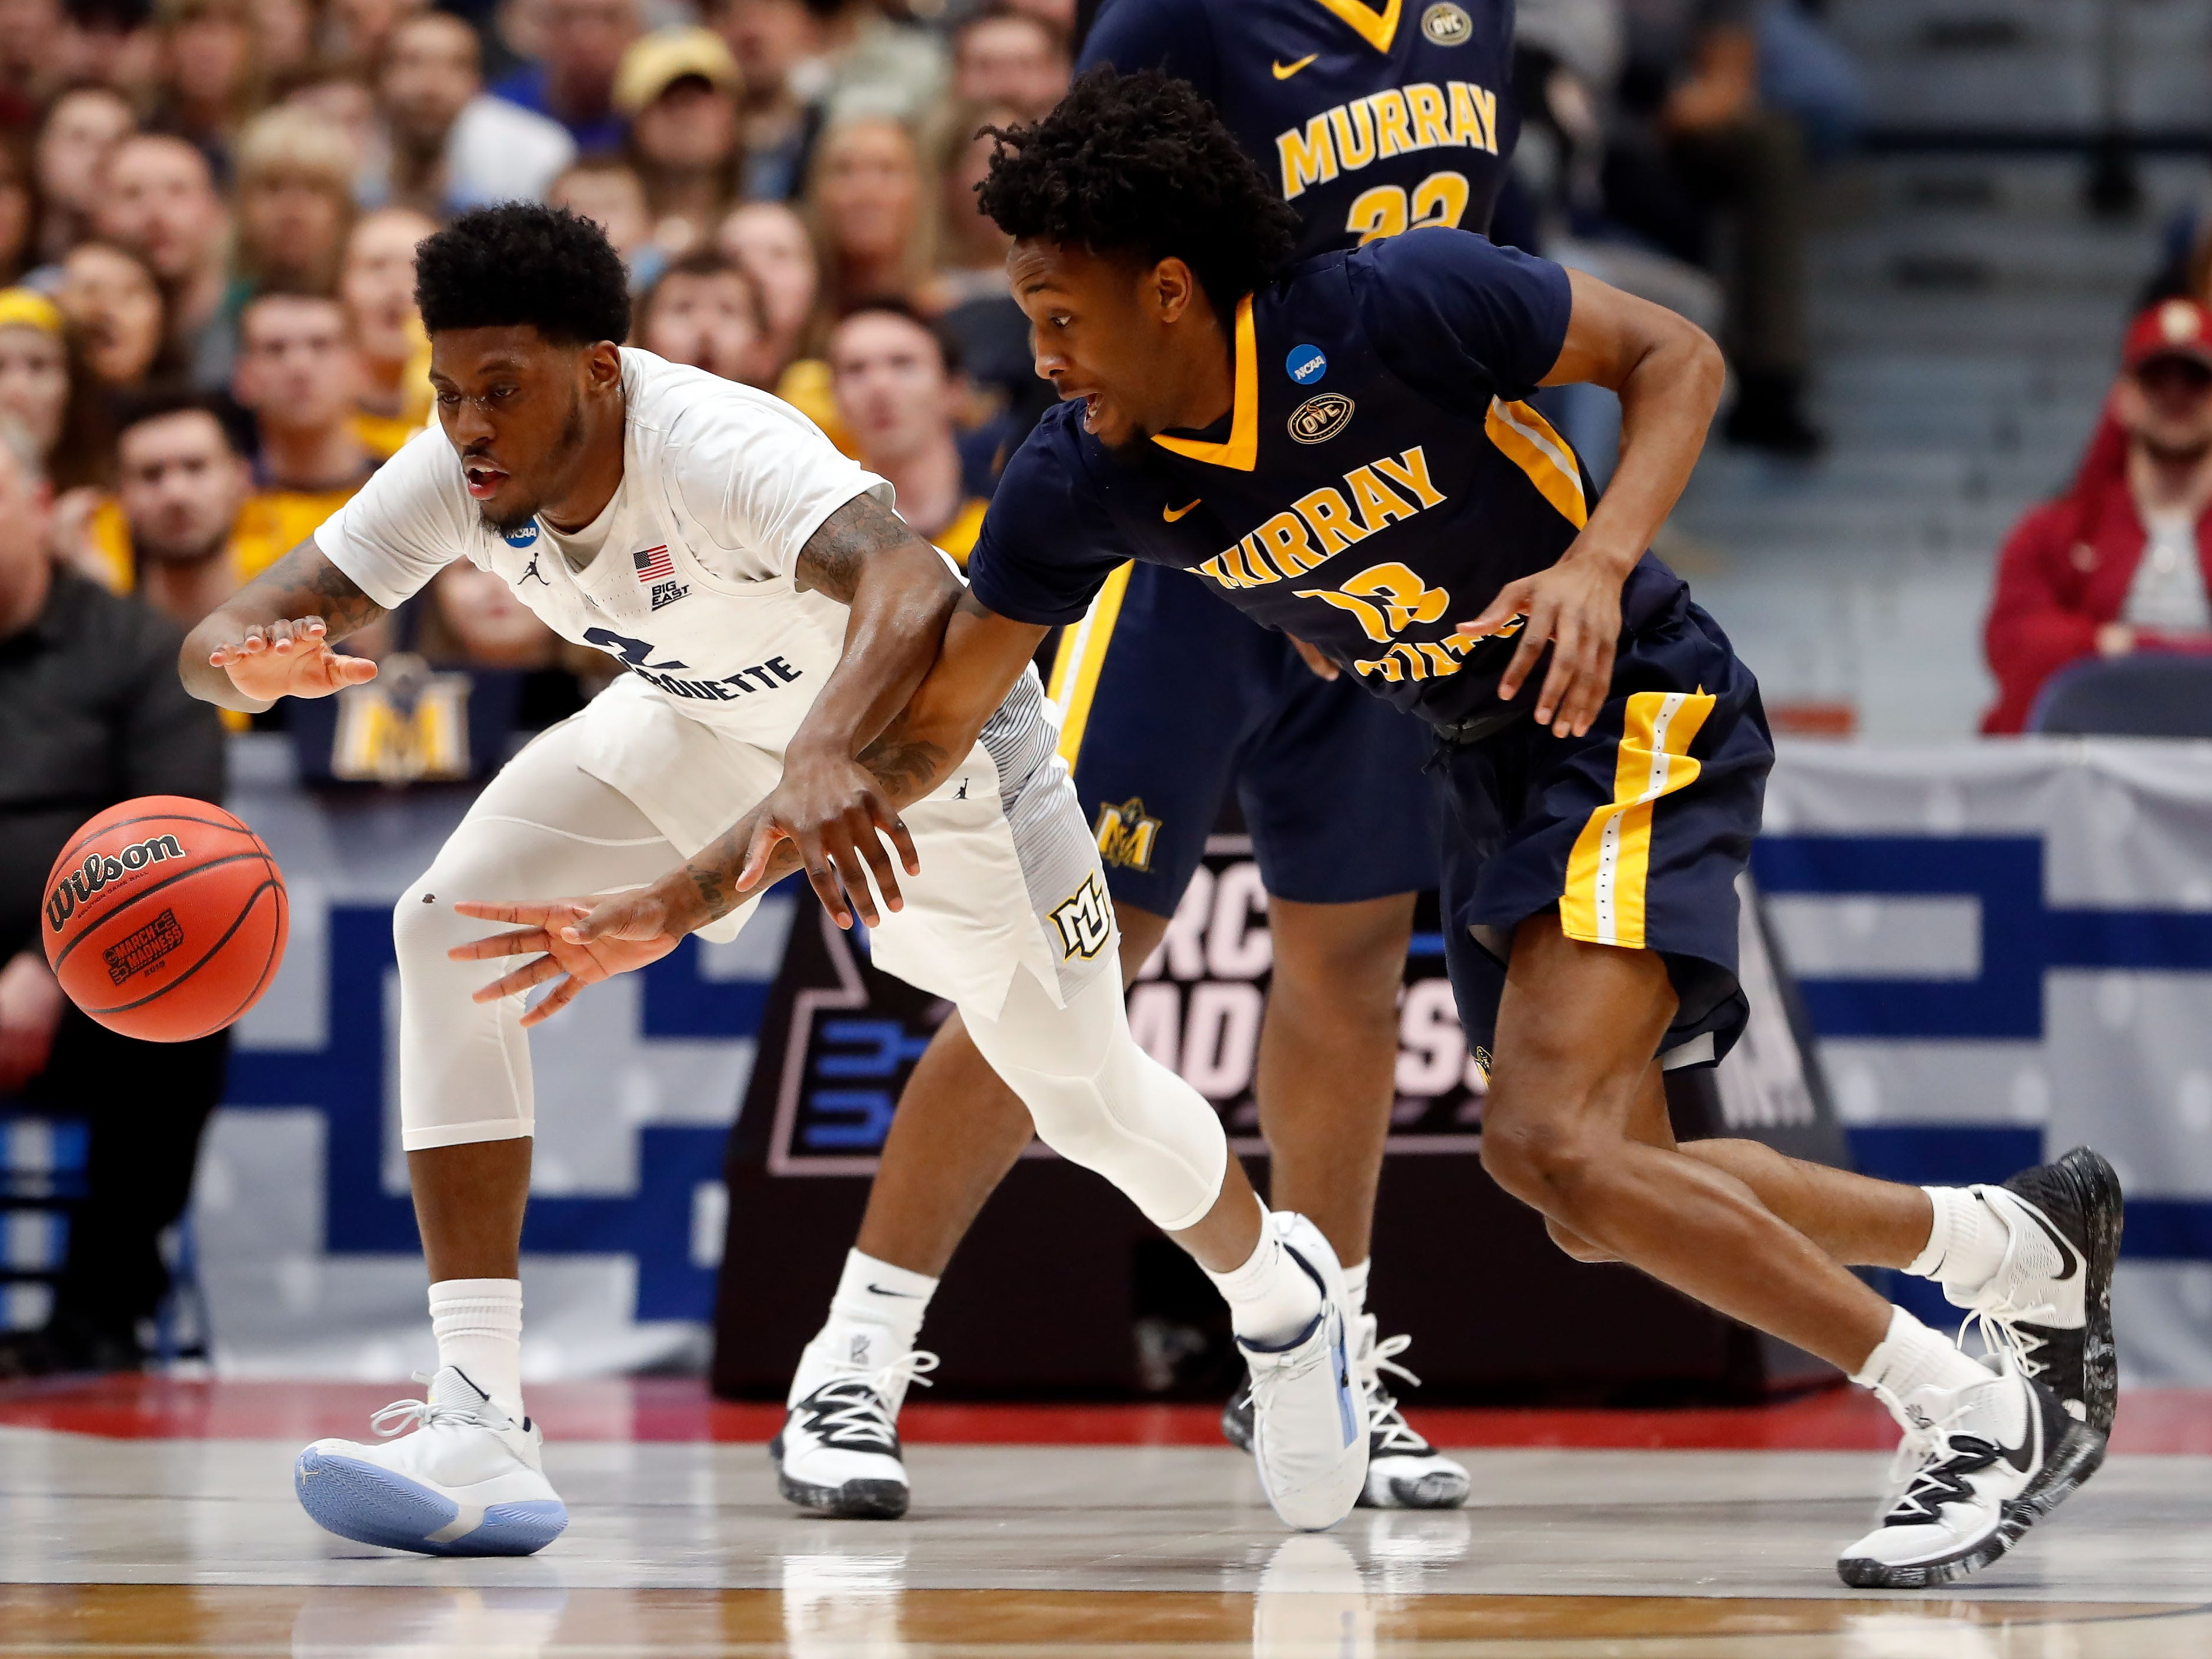 Marquette's Sacar Anim and Devin Gilmore of Murray State chase after a loose ball during the first half.